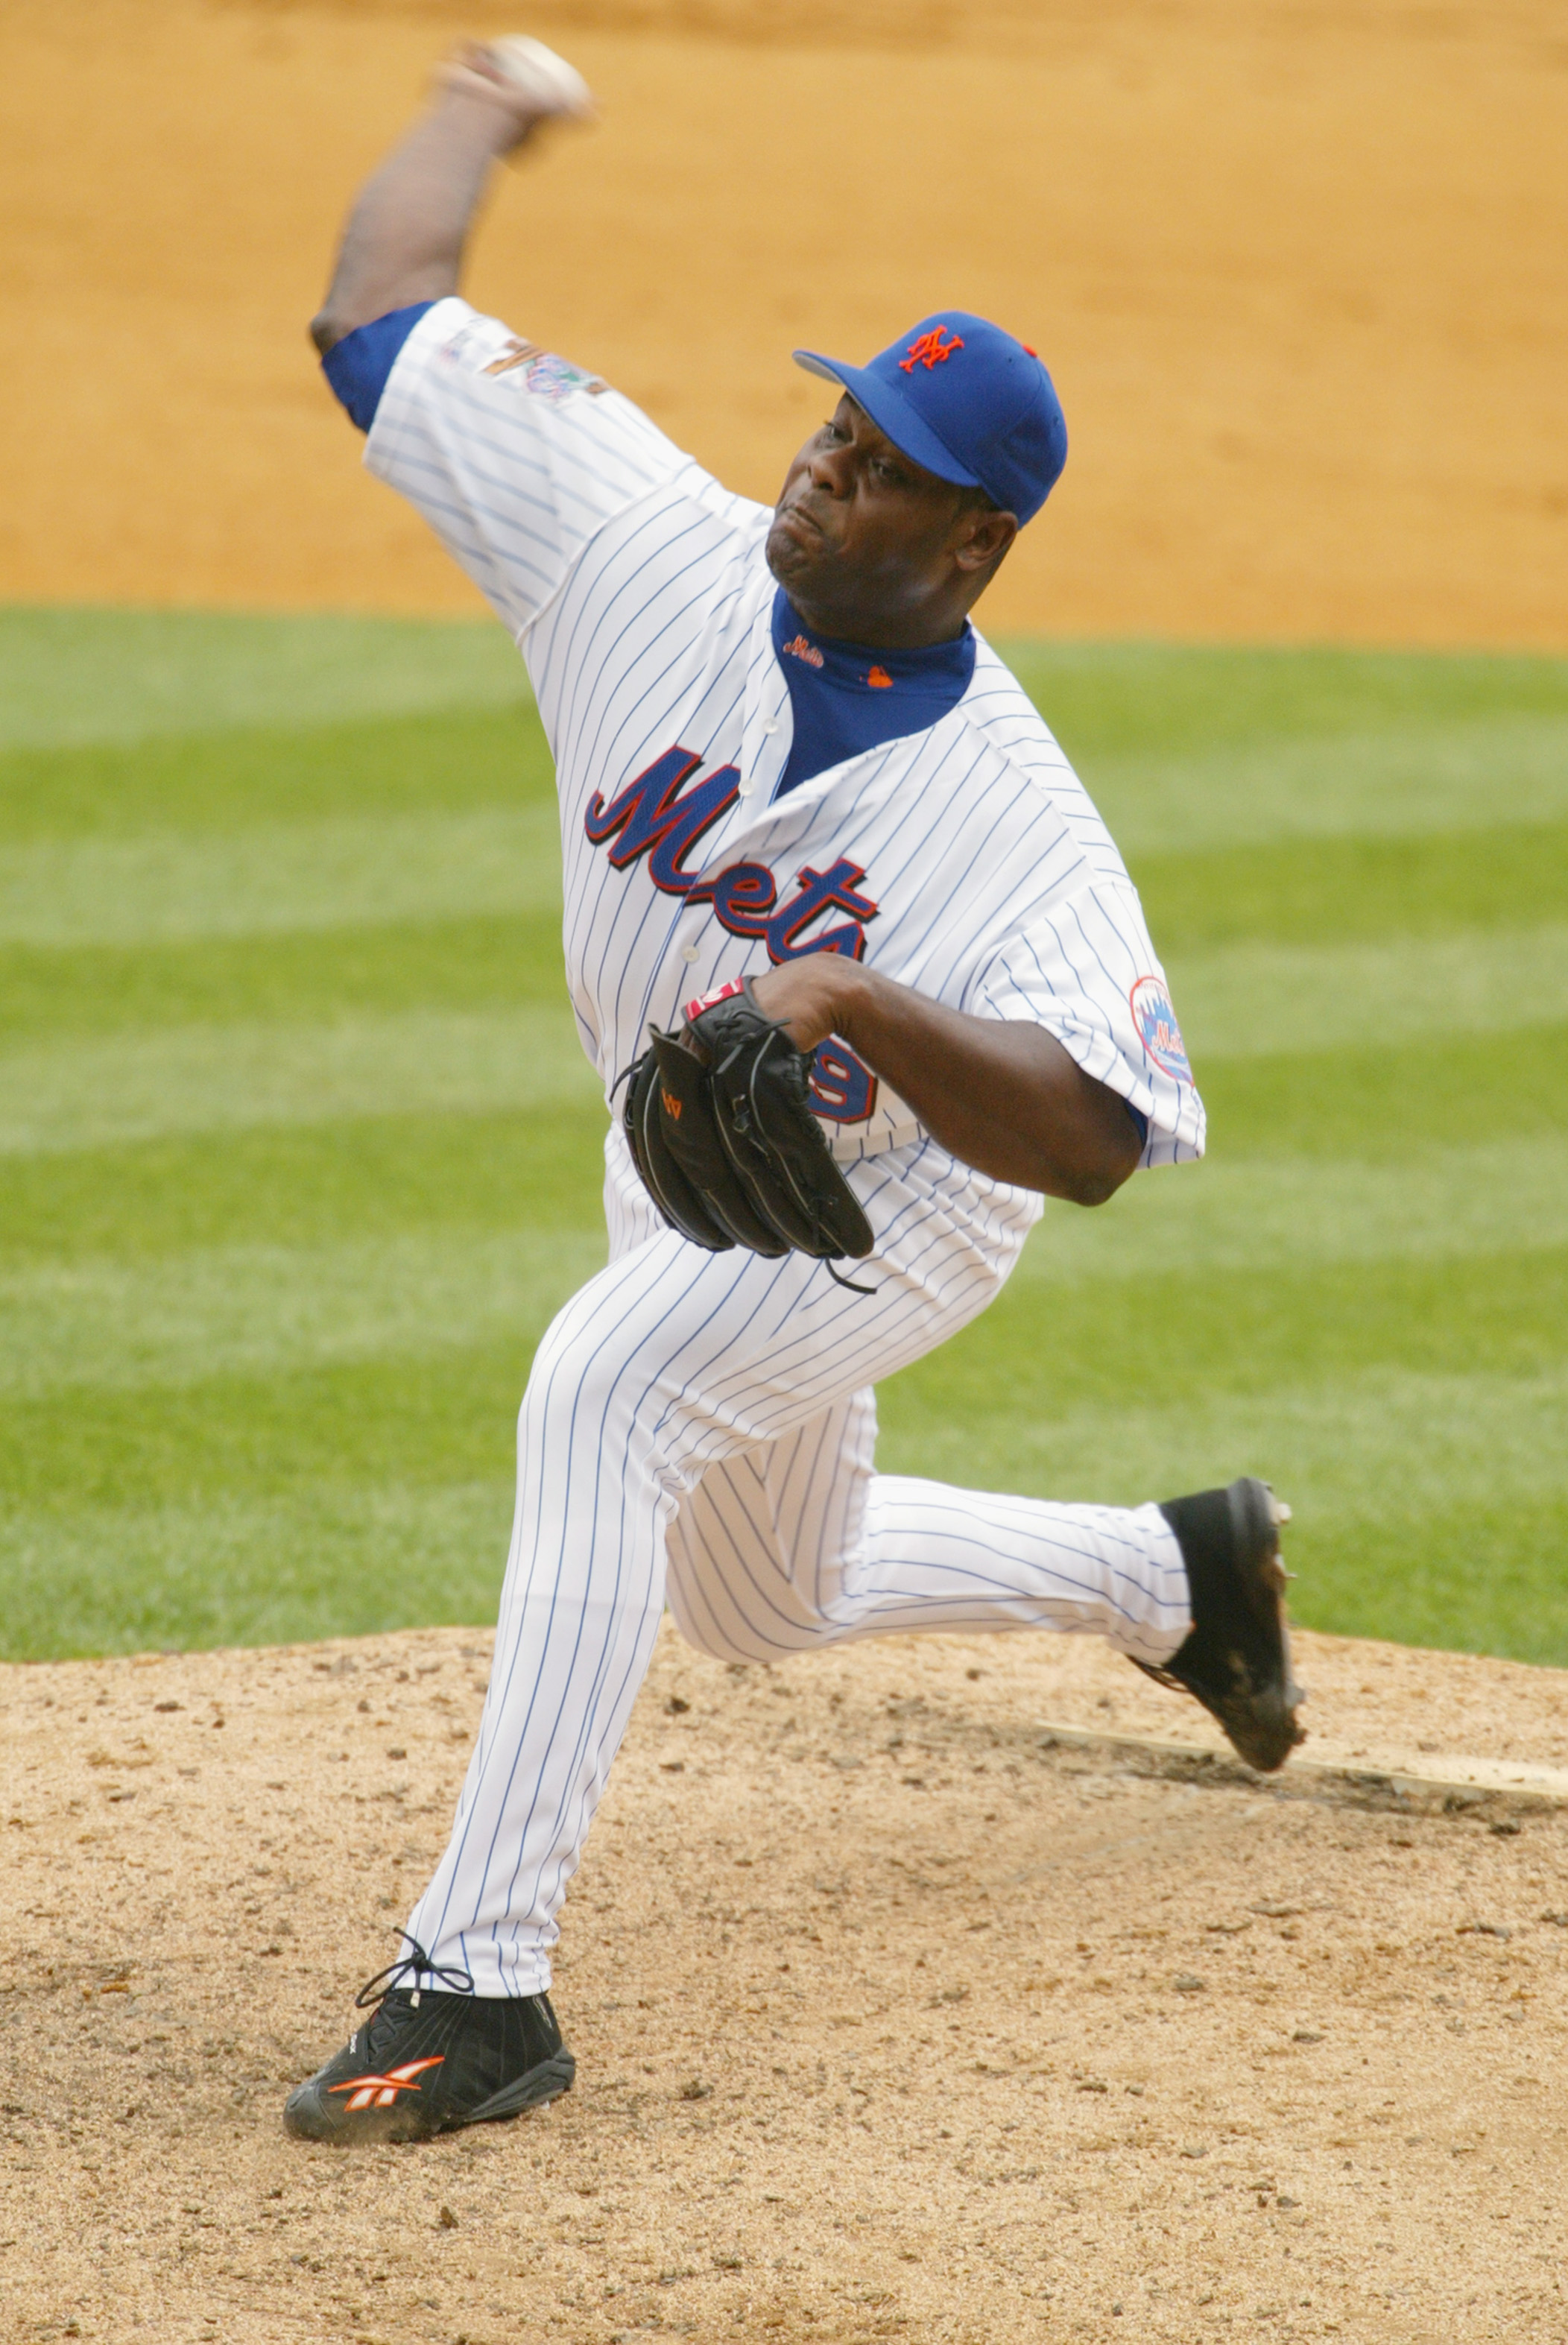 Aroldis Chapman and the 15 Fastest Pitches Ever Recorded